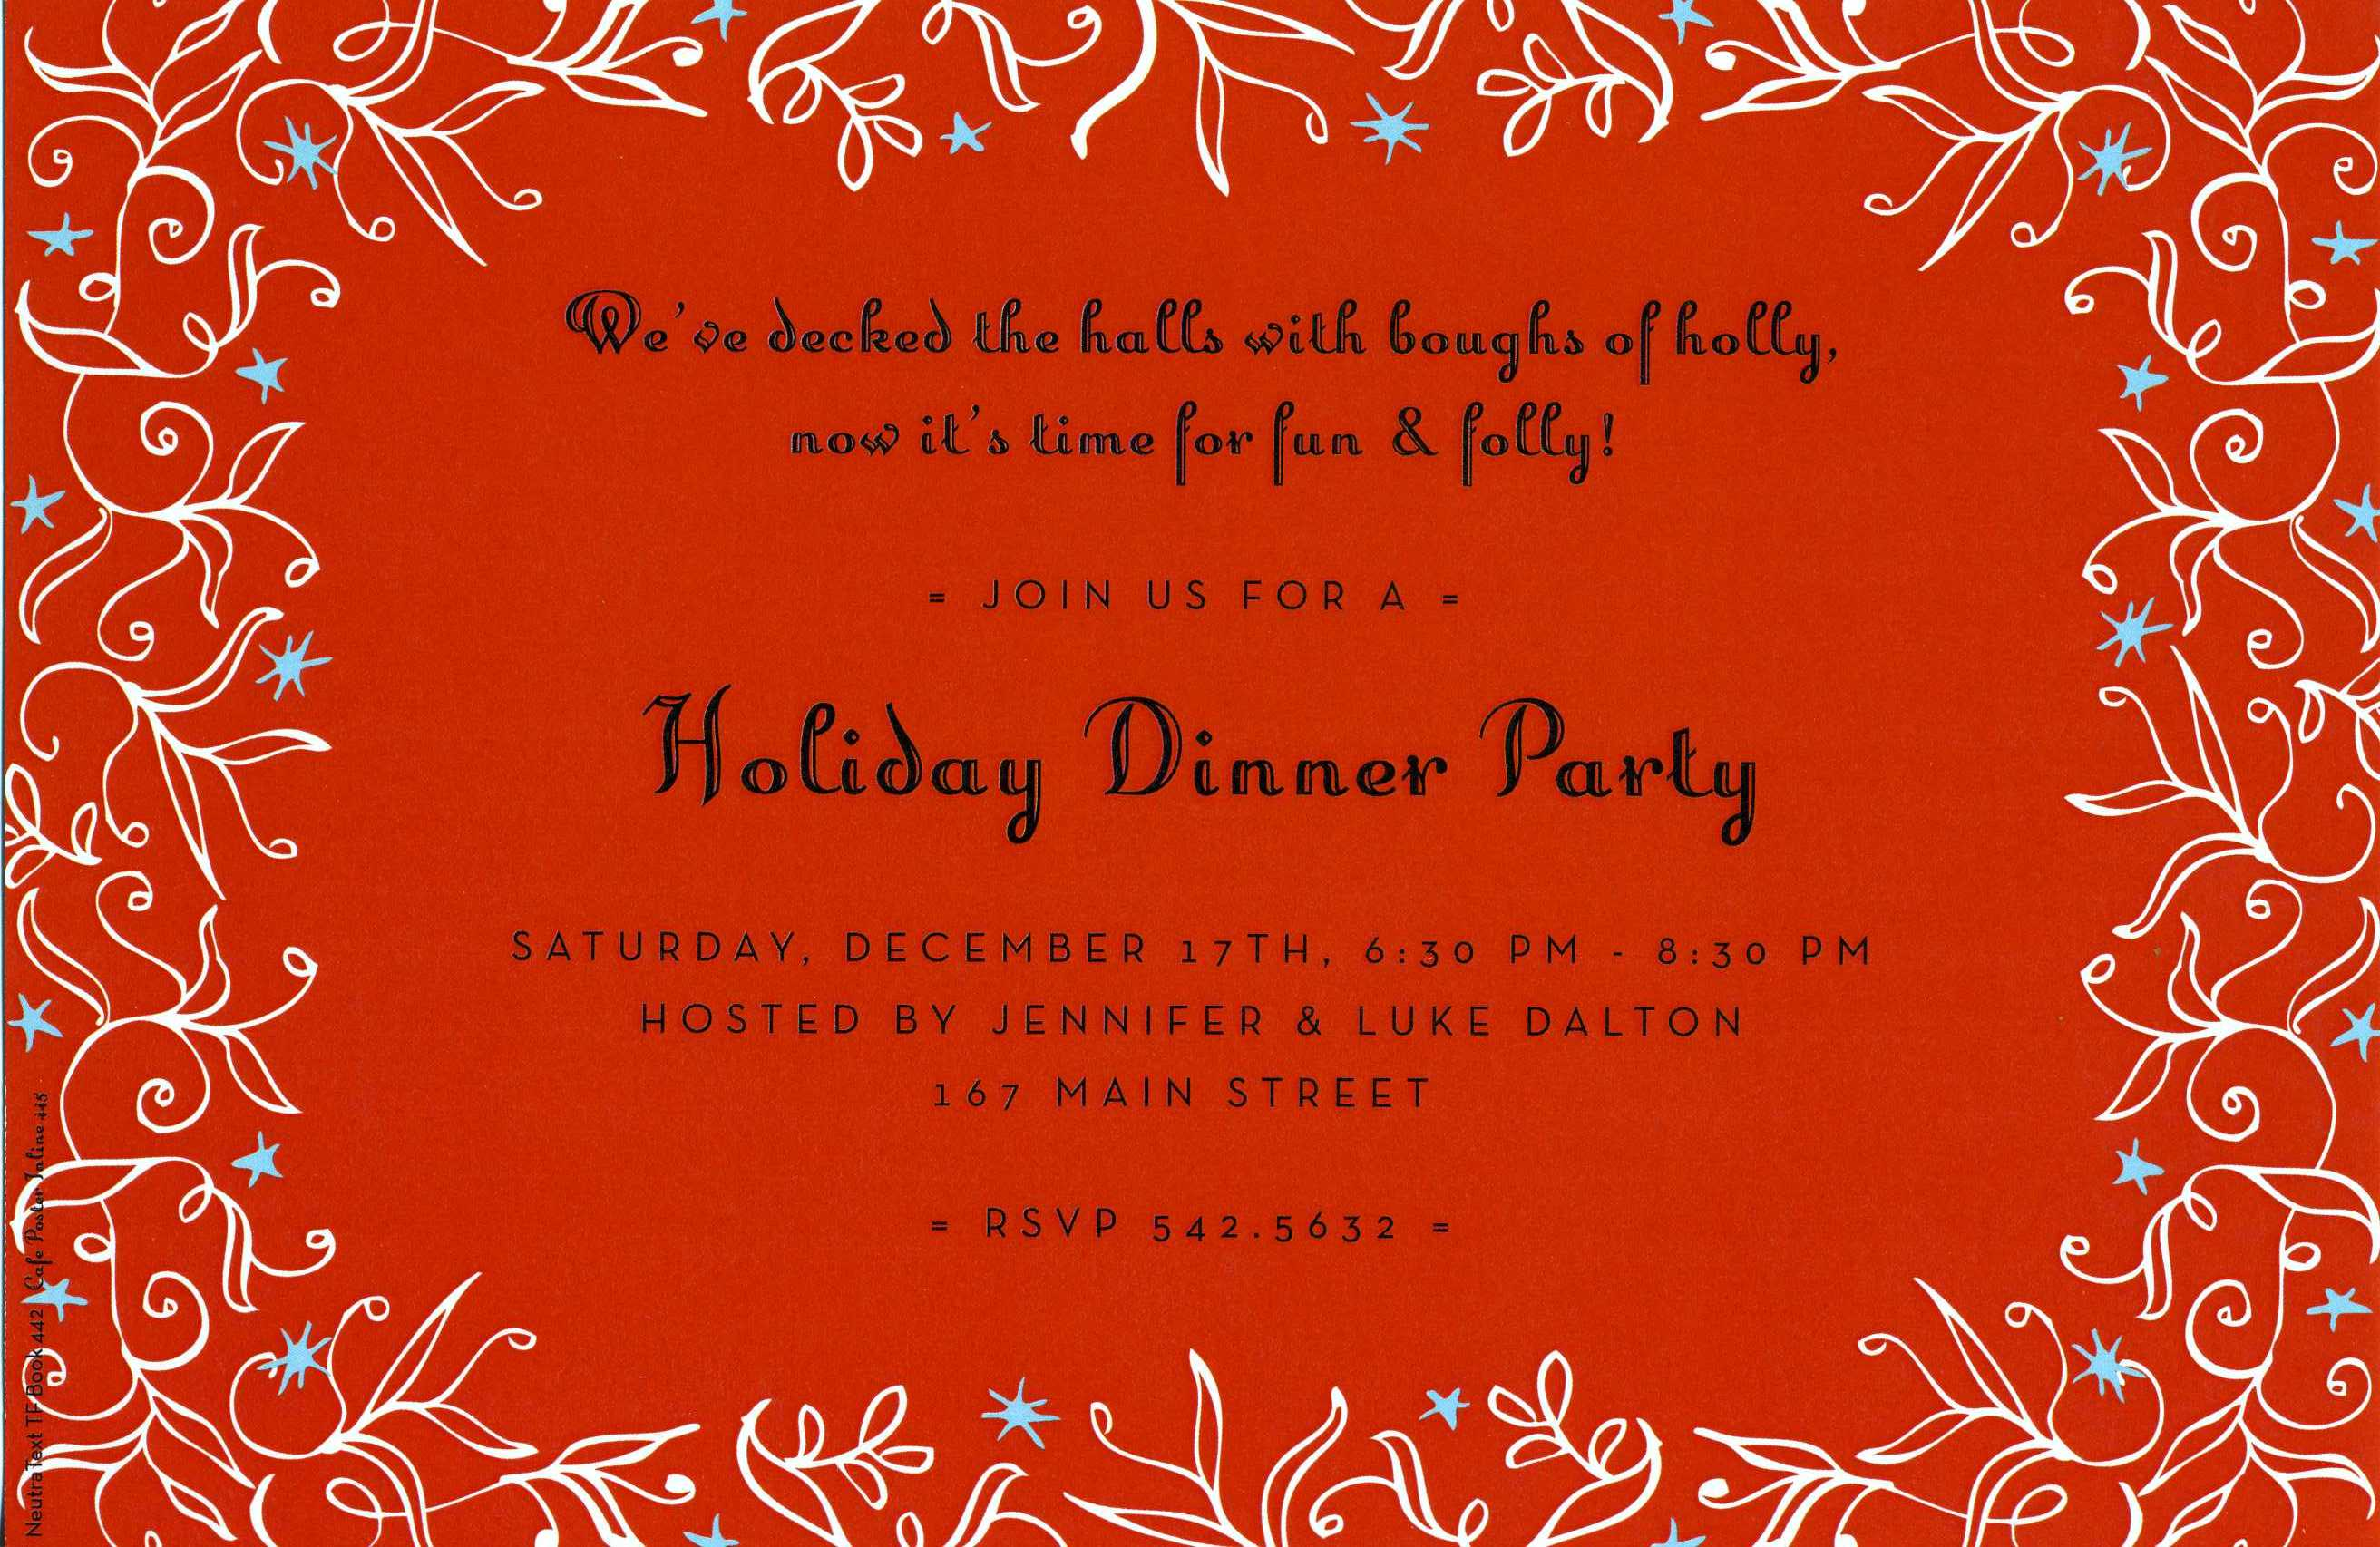 Sparkle Holy Invitation - This beautiful holiday invitation features a festive red background with a bright white vine border and decorative blue stars.  Perfect for a holiday dinner party or cocktail party!  Includes white envelope.